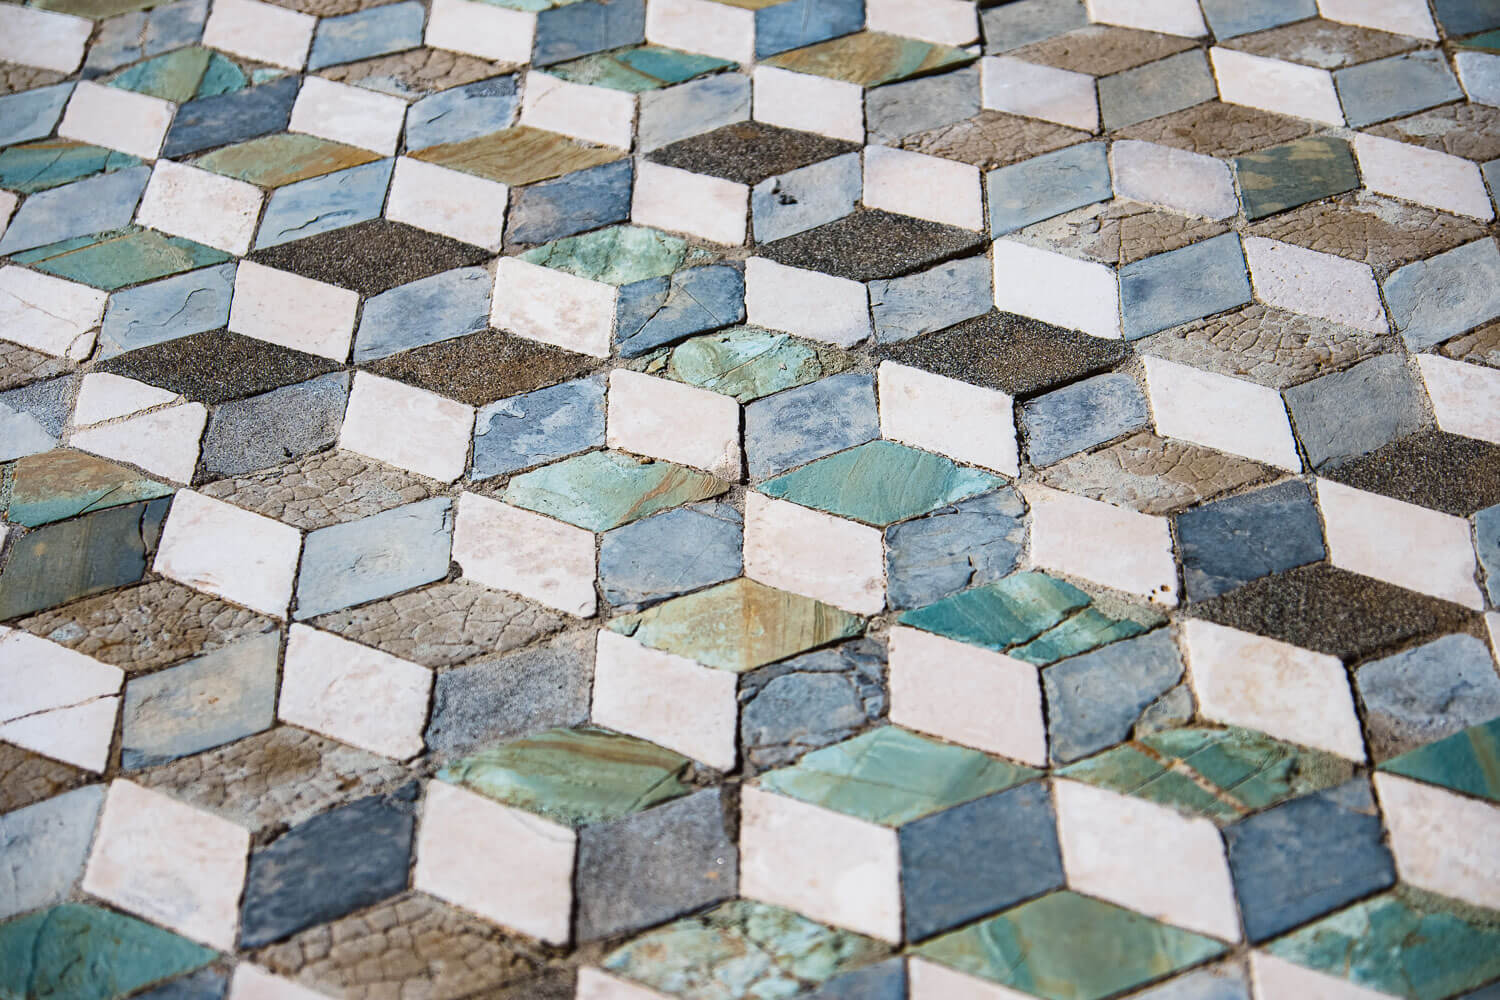 """3D geometric tiles in Pompeii. Travel photography and guide by © Natasha Lequepeys for """"And Then I Met Yoko"""". #pompeii #italy #fujifilm #travelphotography"""